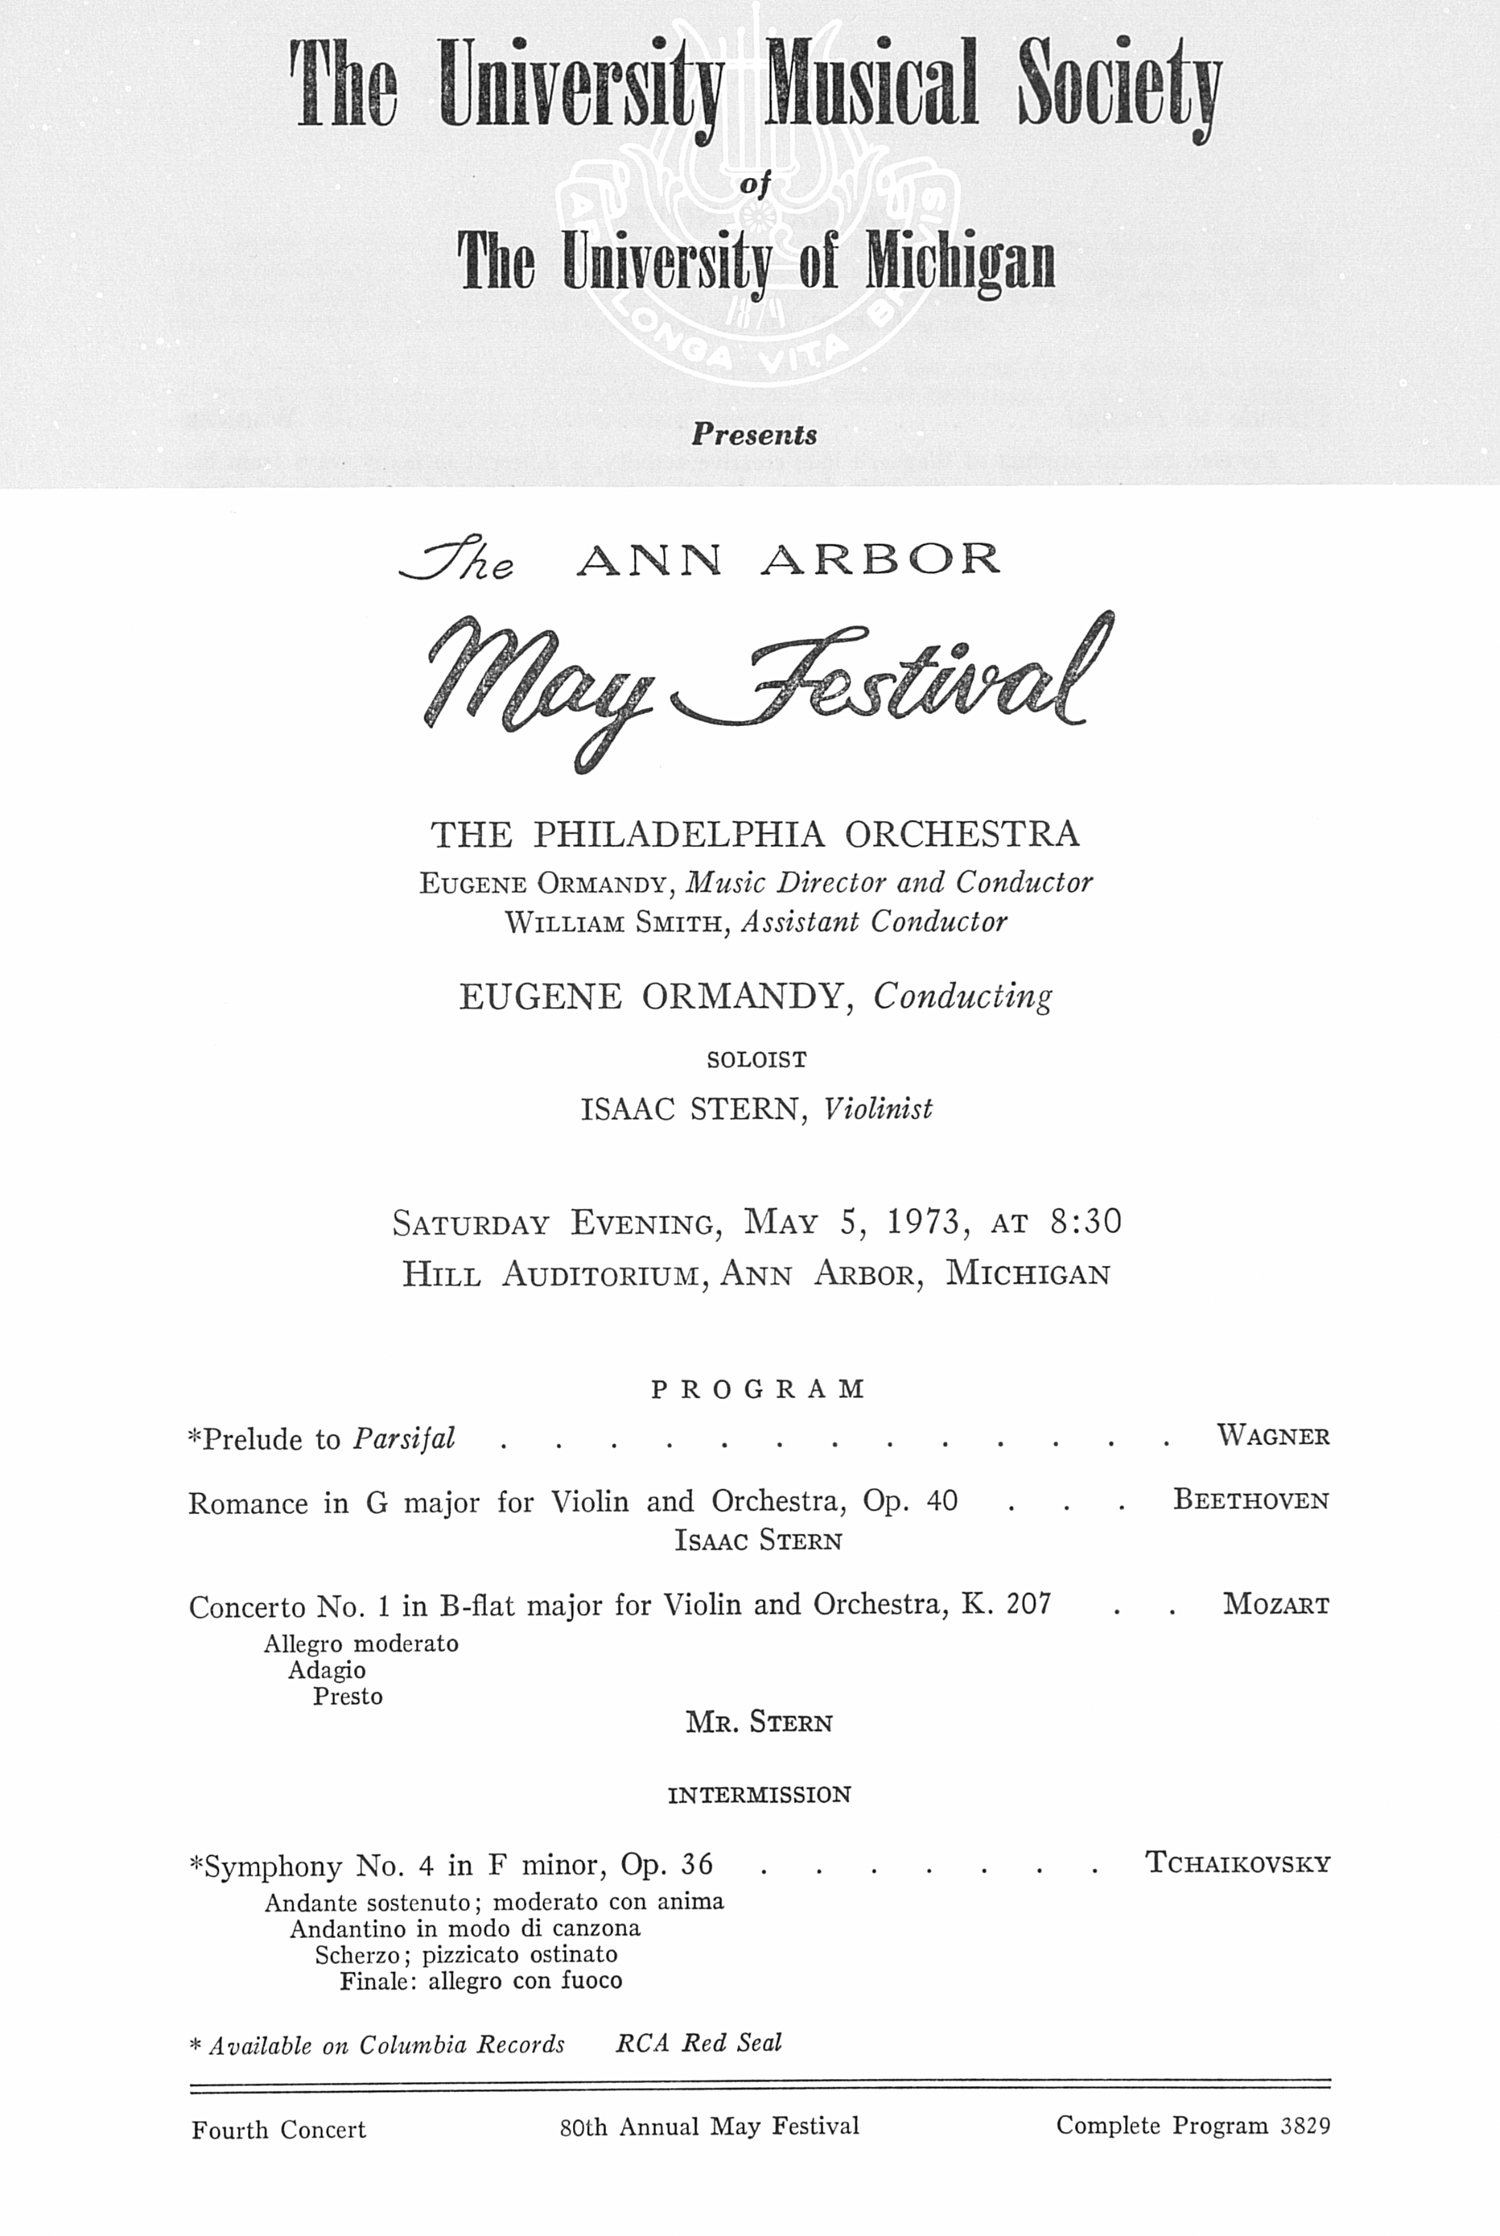 UMS Concert Program, May 5, 1973: The Ann Arbor May Festival -- The Philadelphia Orchestra image